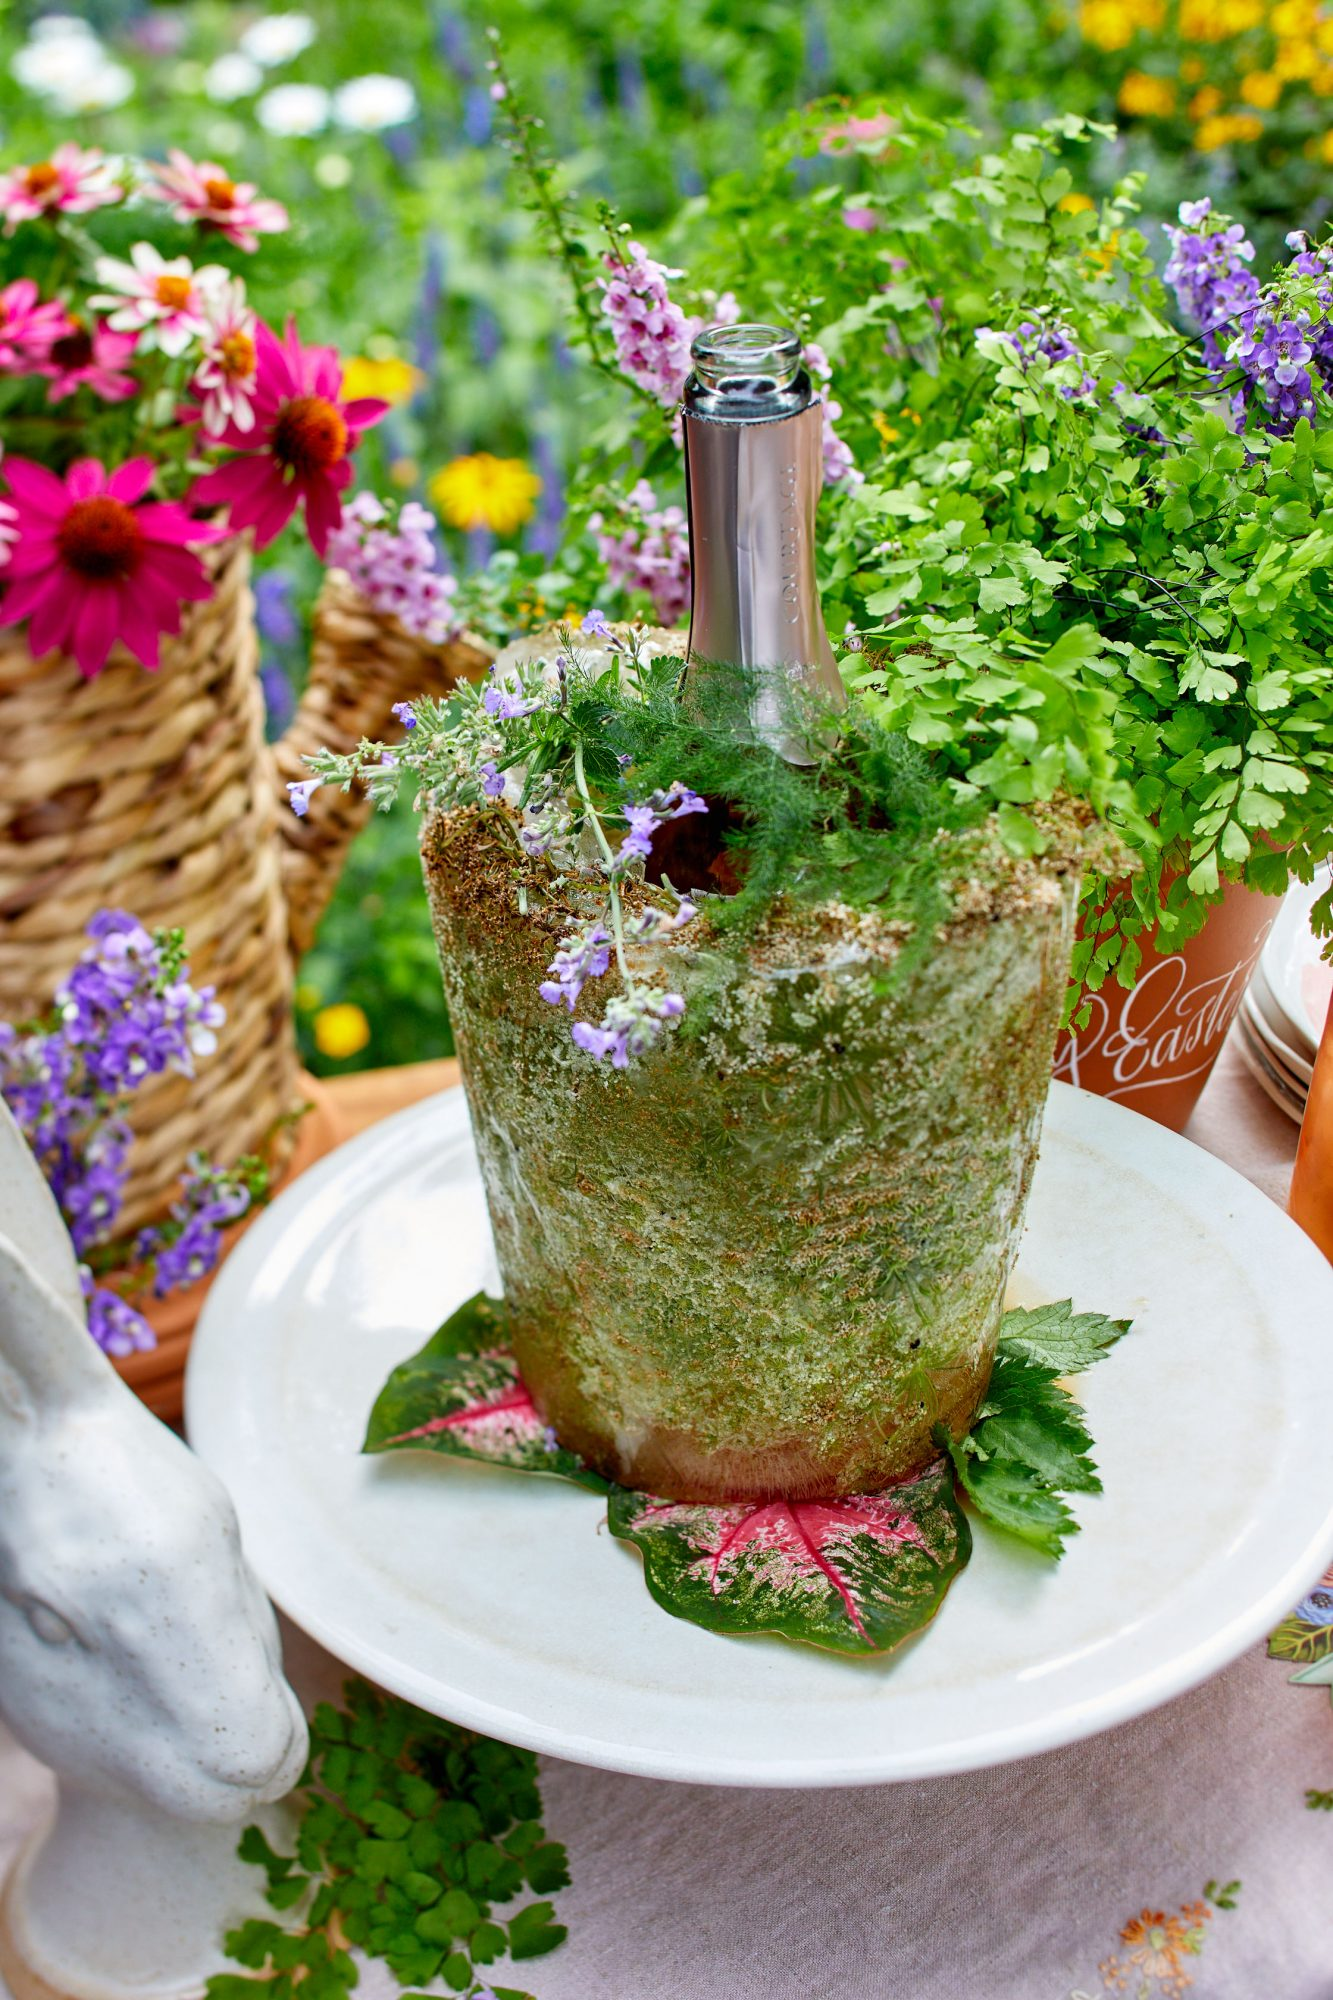 Homemade Champagne Bucket with Queen Anne's lace for outdoor Easter party